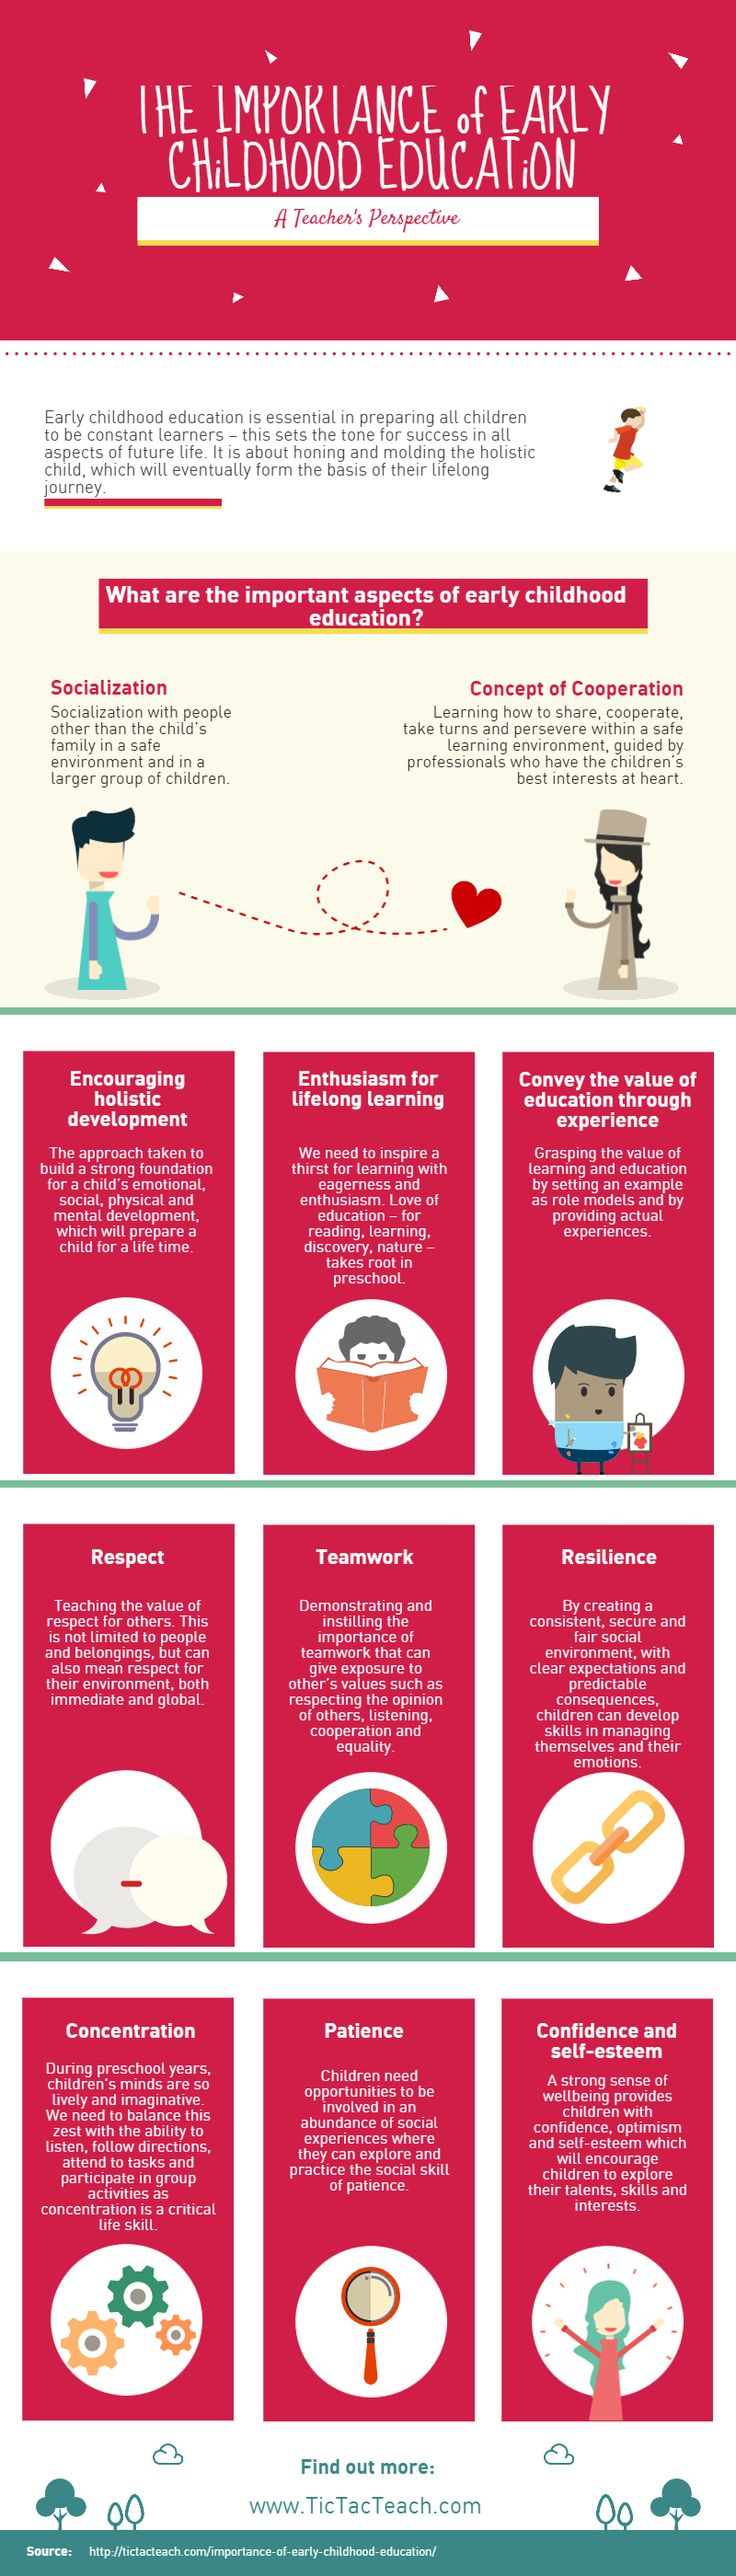 The Importance of Early Childhood Education - TicTacTeach